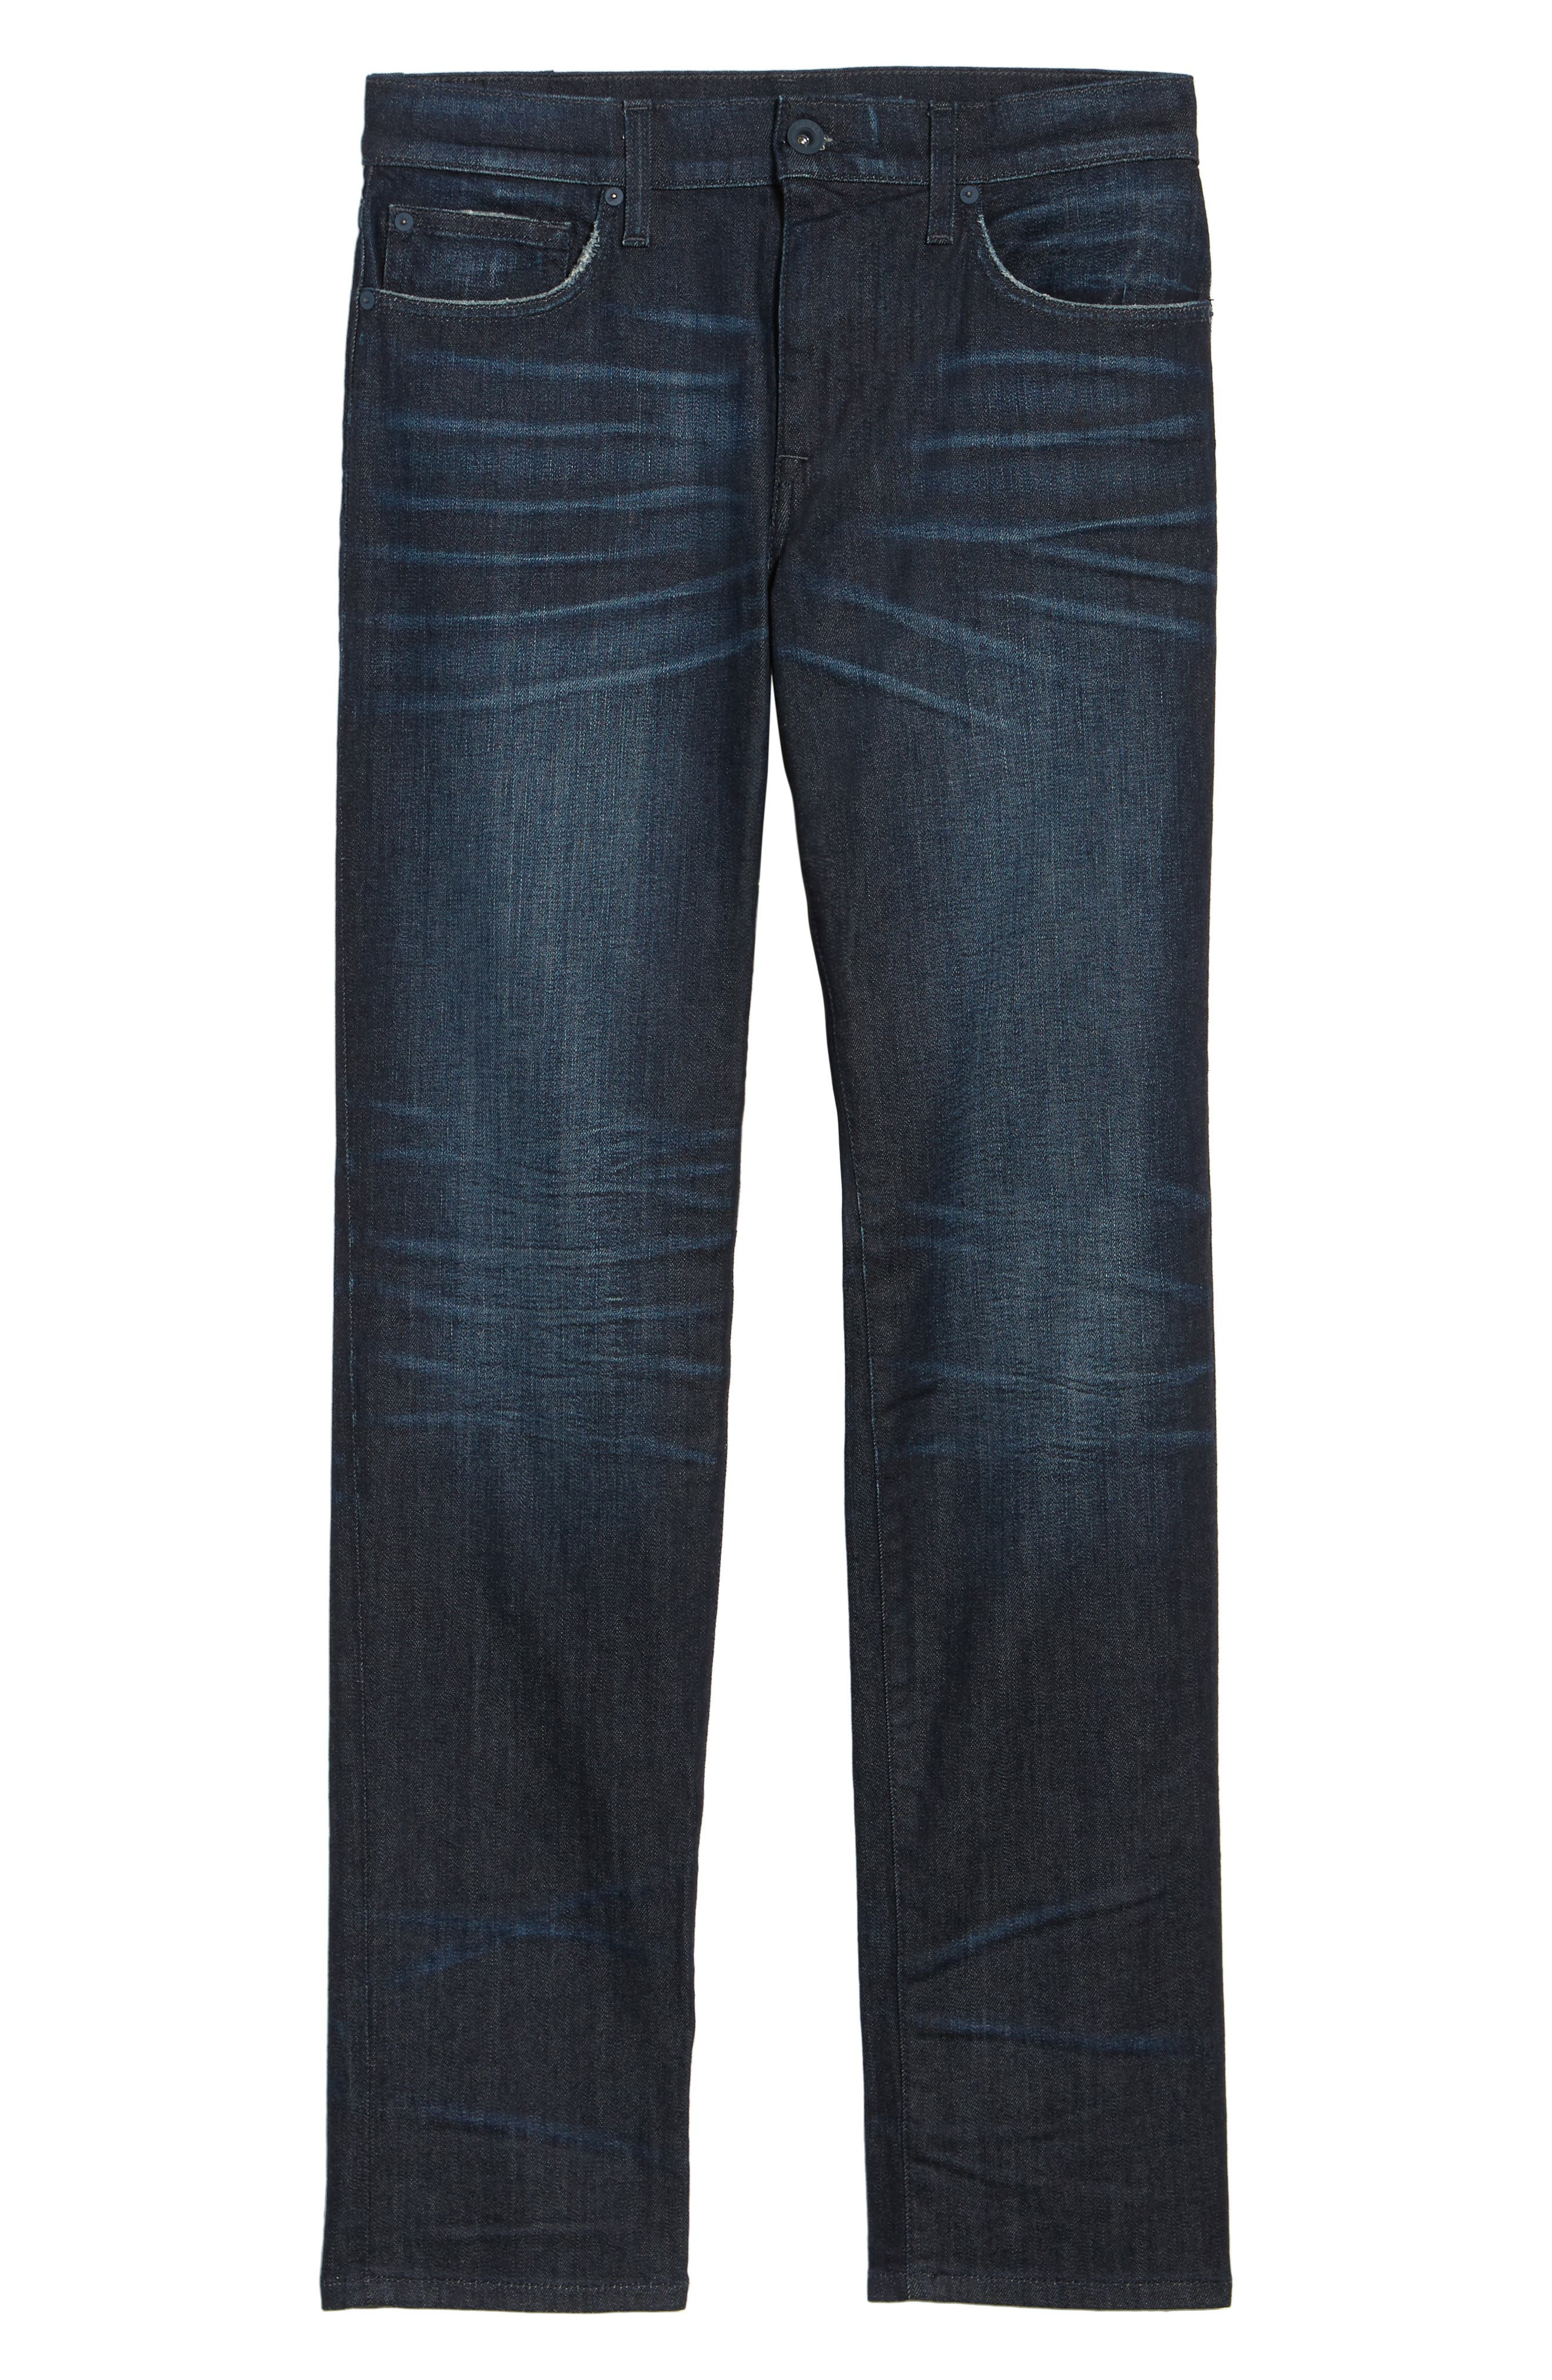 Brixton Slim Straight Fit Jeans,                             Alternate thumbnail 6, color,                             Maag